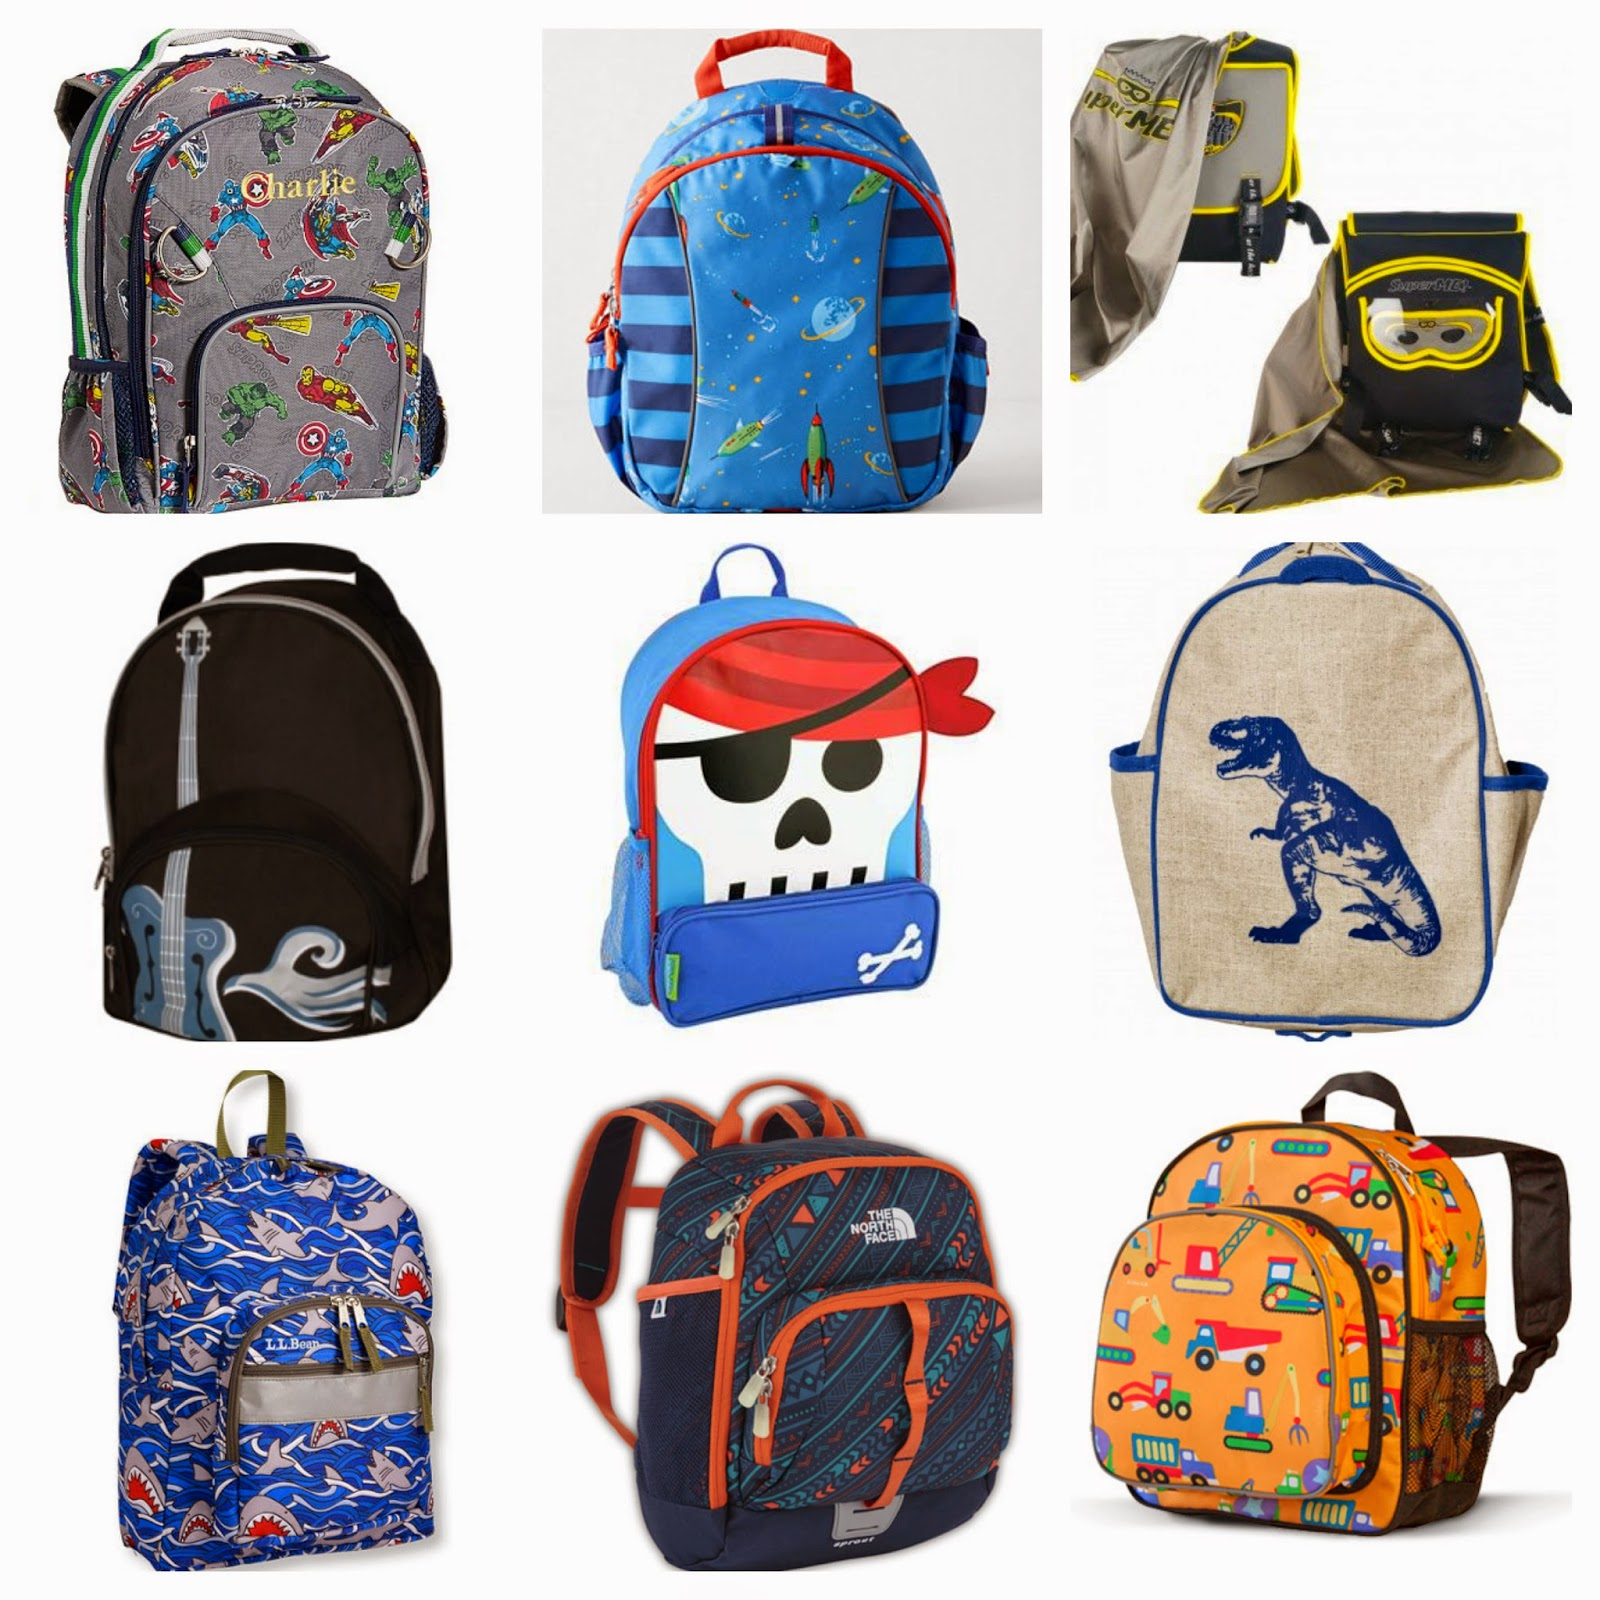 Small Backpacks For Kids 1C1MRvri